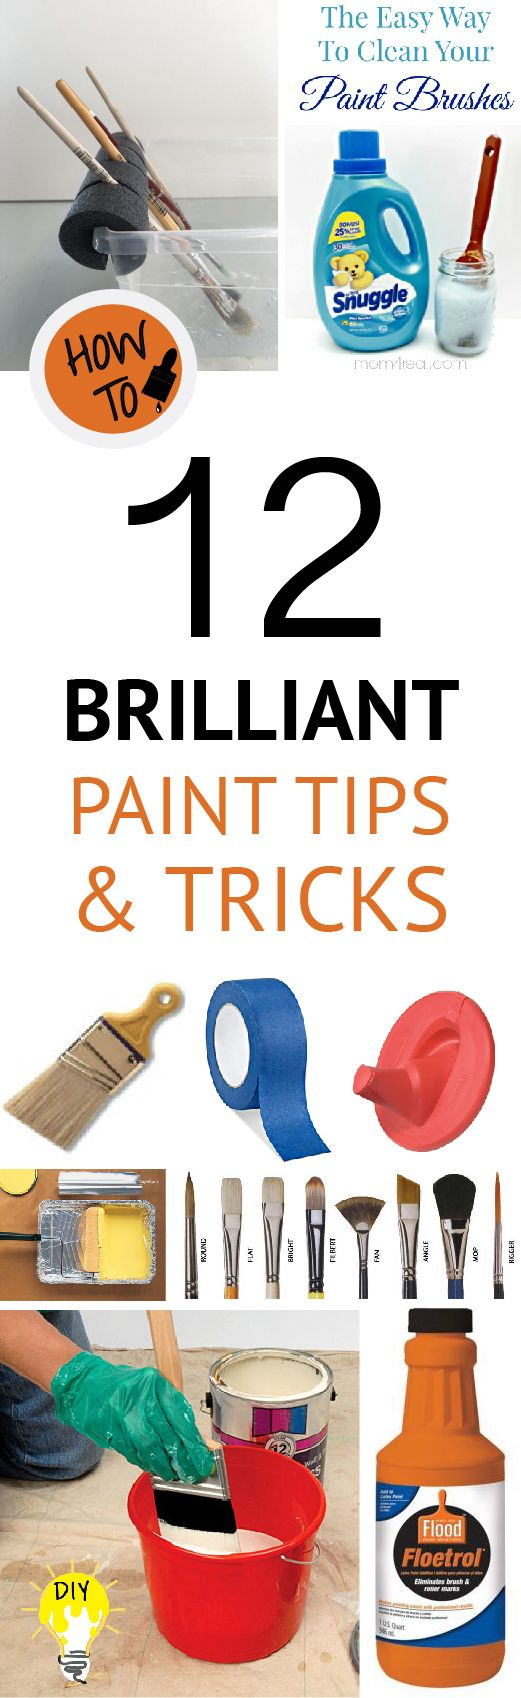 There are so many brilliant tips out there on ways to paint furniture, walls, everything, faster and more efficiently. Also,...  Read more »